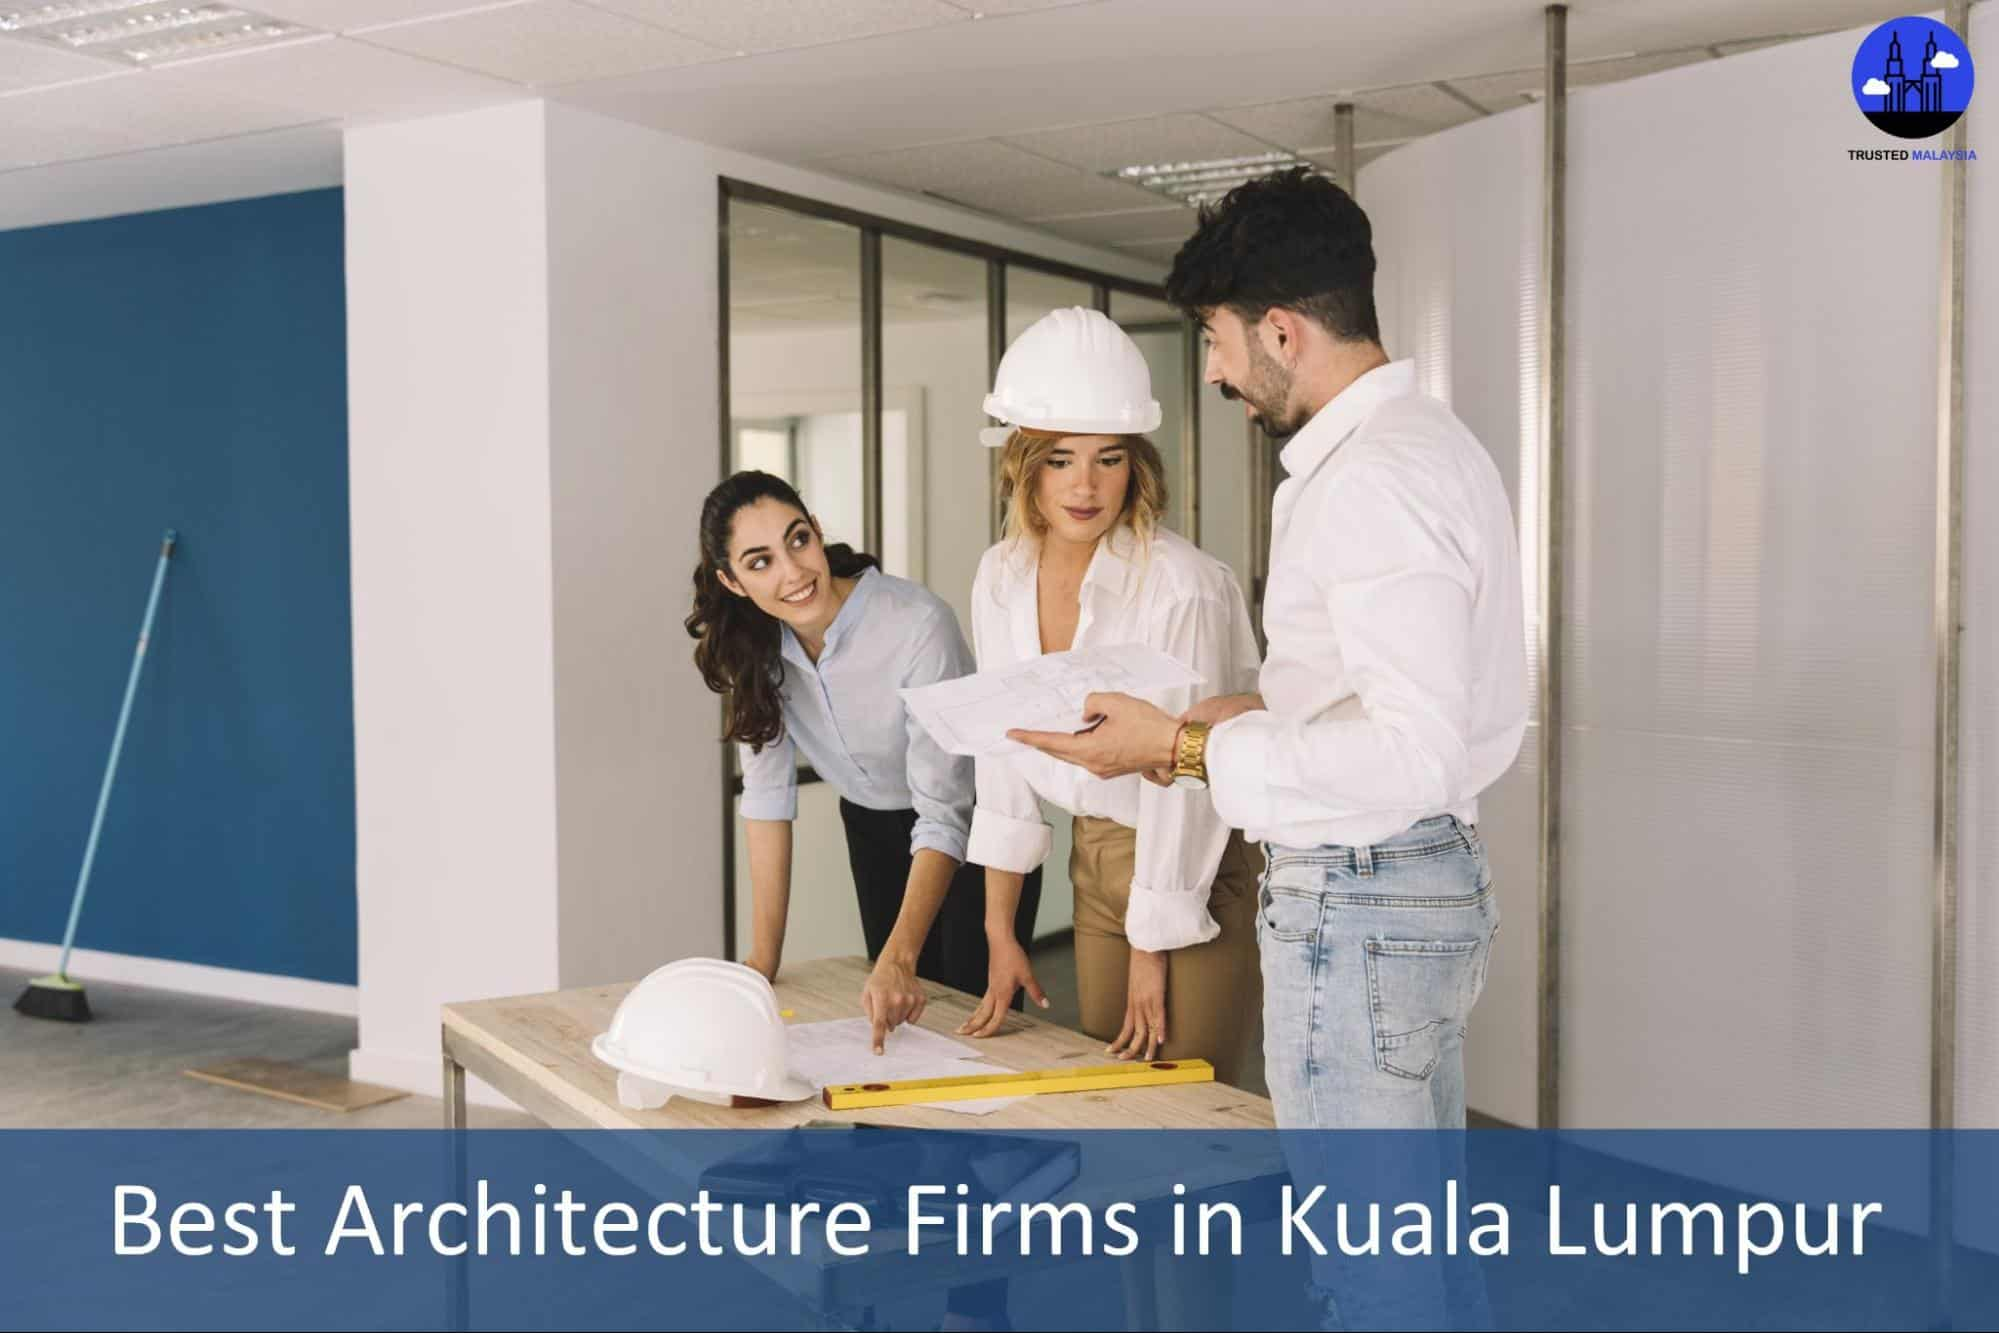 Best Architecture Firms in Kuala Lumpur